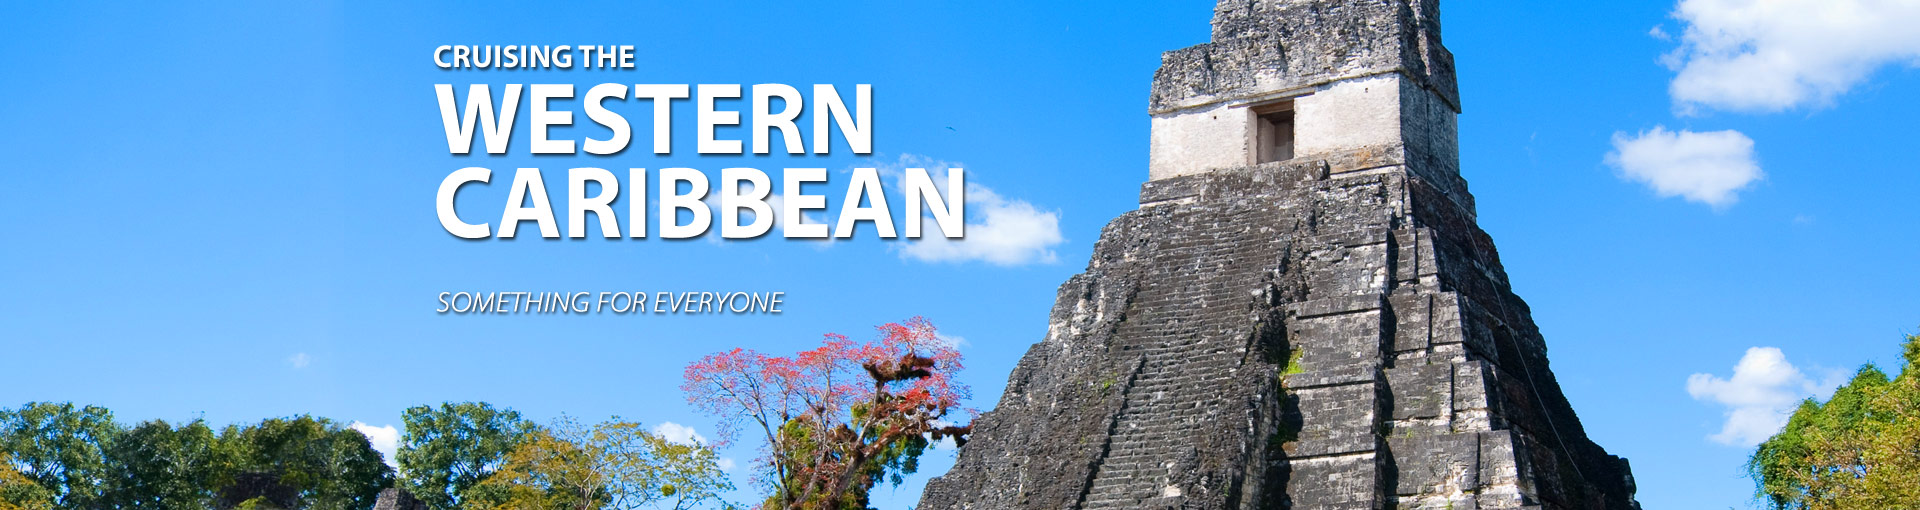 Cruises To The Western Caribbean And Western Caribbean - West caribbean cruise